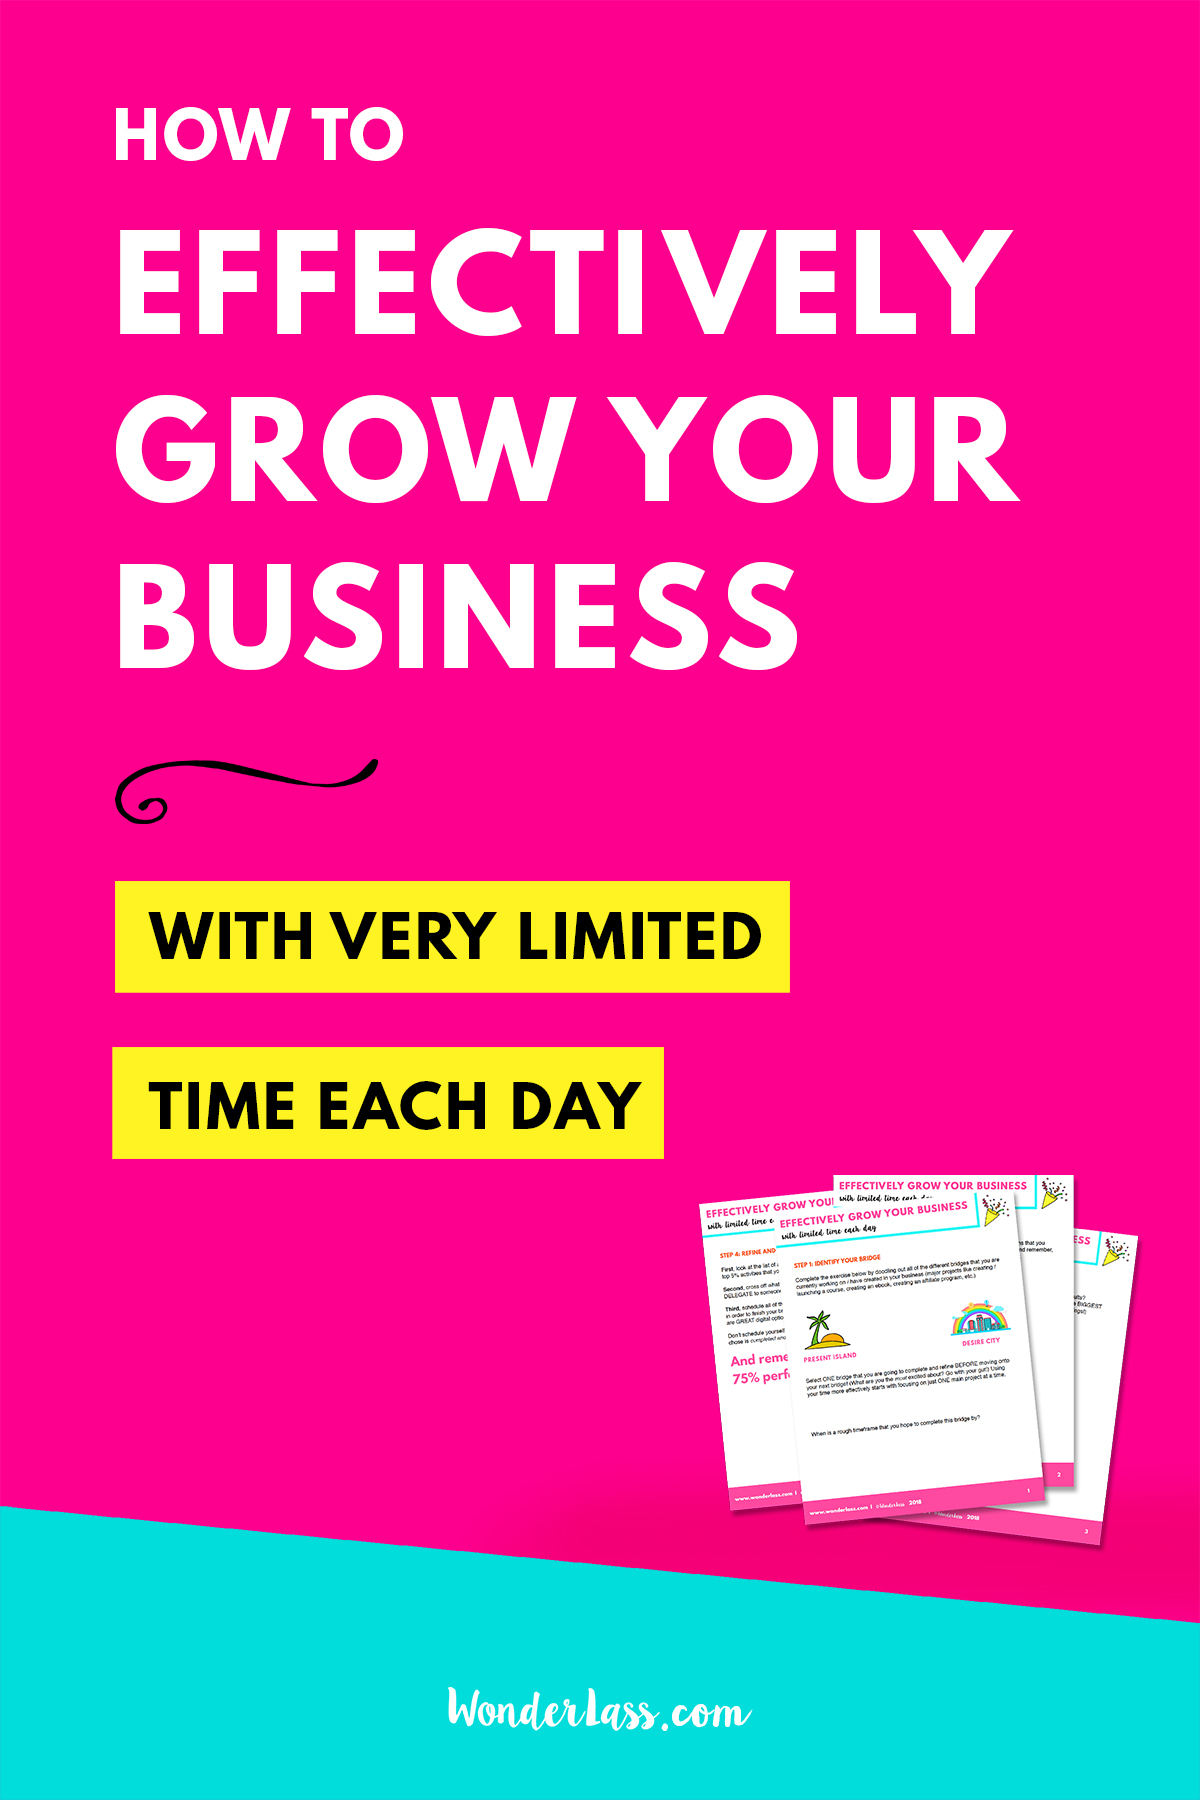 How to effectively grow your business with very limited time each day | Work SMARTER not harder!  Check out this short, actionable blog post + video to learn 6 simple steps that you can take TODAY to start seeing more progress and better results in your online business when you only have small amounts of time each day to work on it!  #passiveincome  #passiveincomestrategies #howtomakepassiveincome #passiveincomestreams #howtogrowyourbusinessfaster #howtoselldigitalproductsonline